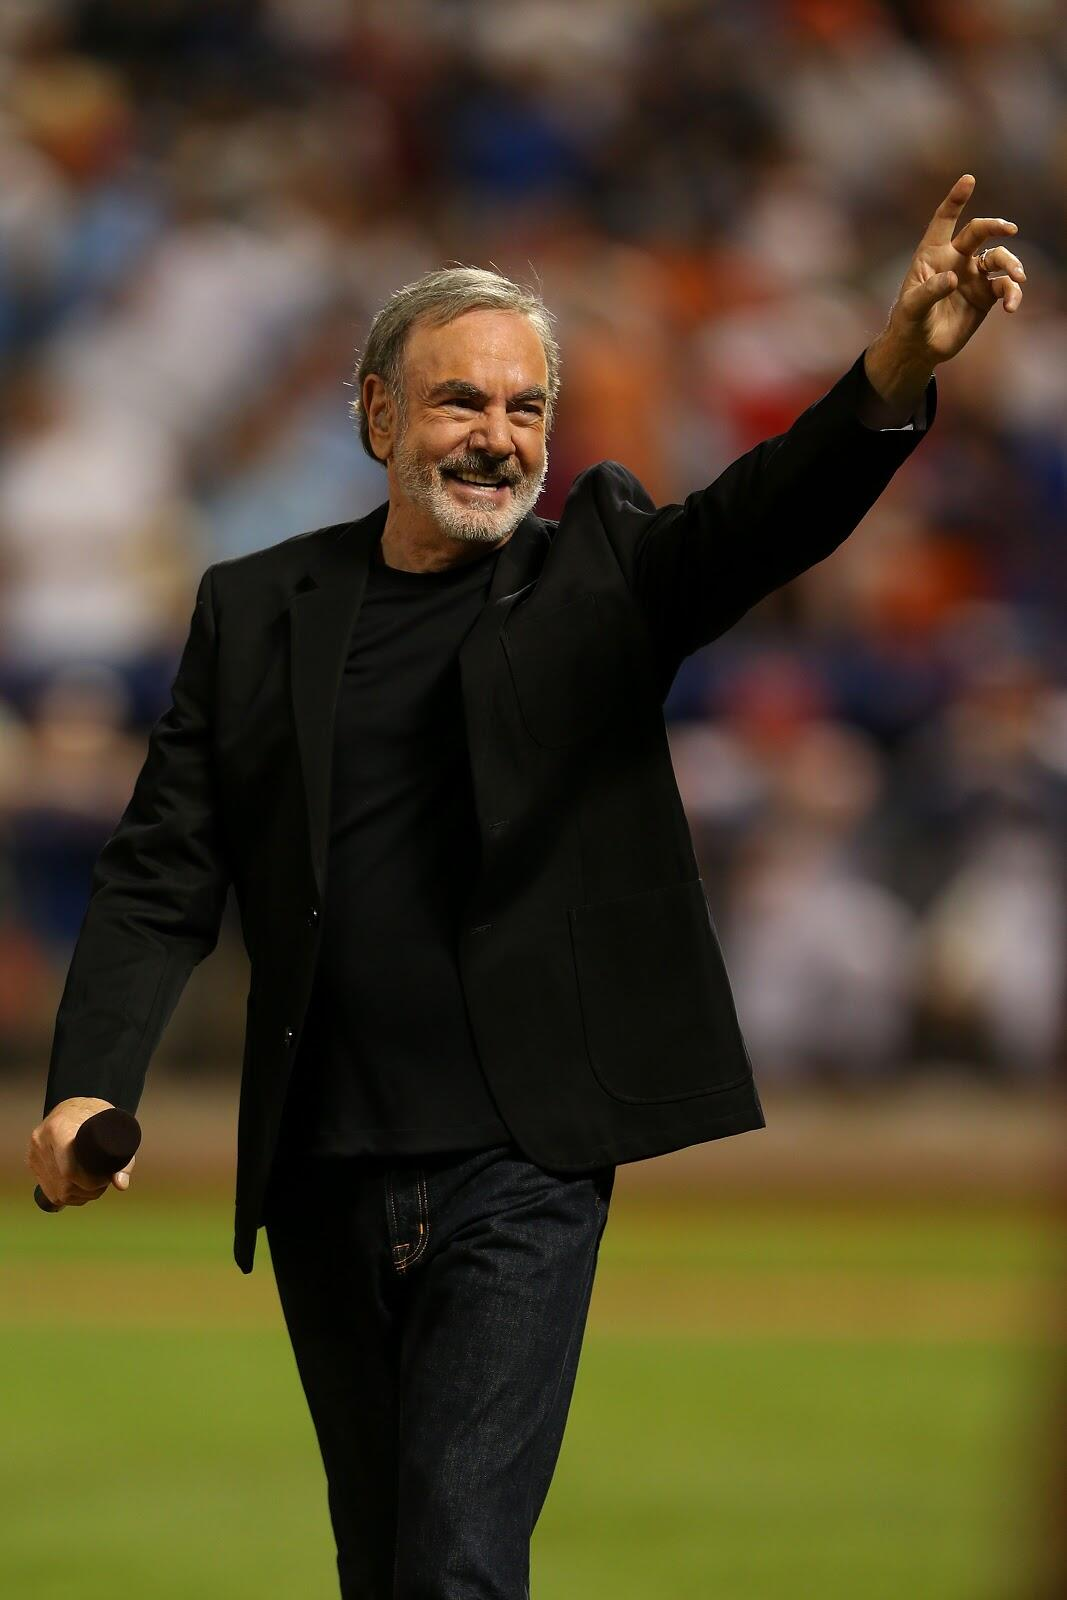 NEW YORK, NY - JULY 16:  Singer Neil Diamond performs during the 84th MLB All-Star Game on July 16, 2013 at Citi Field in the Flushing neighborhood of the Queens borough of New York City.  (Photo by Mike Ehrmann/Getty Images)